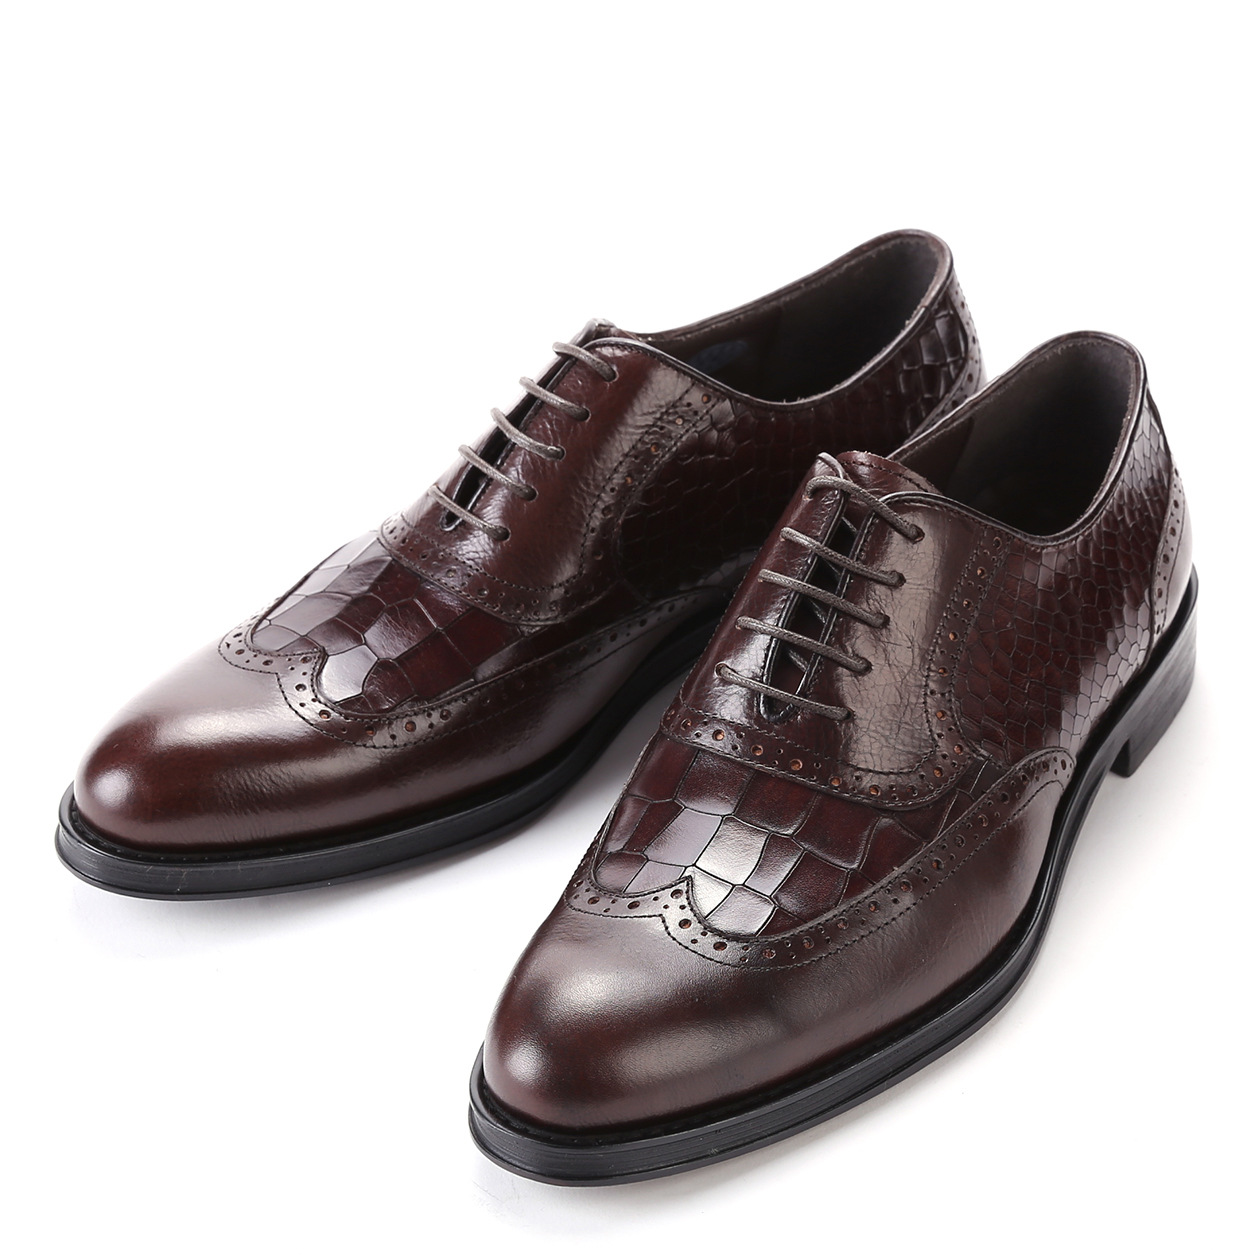 2015 New spring and autumn full grain embossed genuine leather top Luxury fashion Mens Pointed toe Dress Business oxfords shoes(China (Mainland))